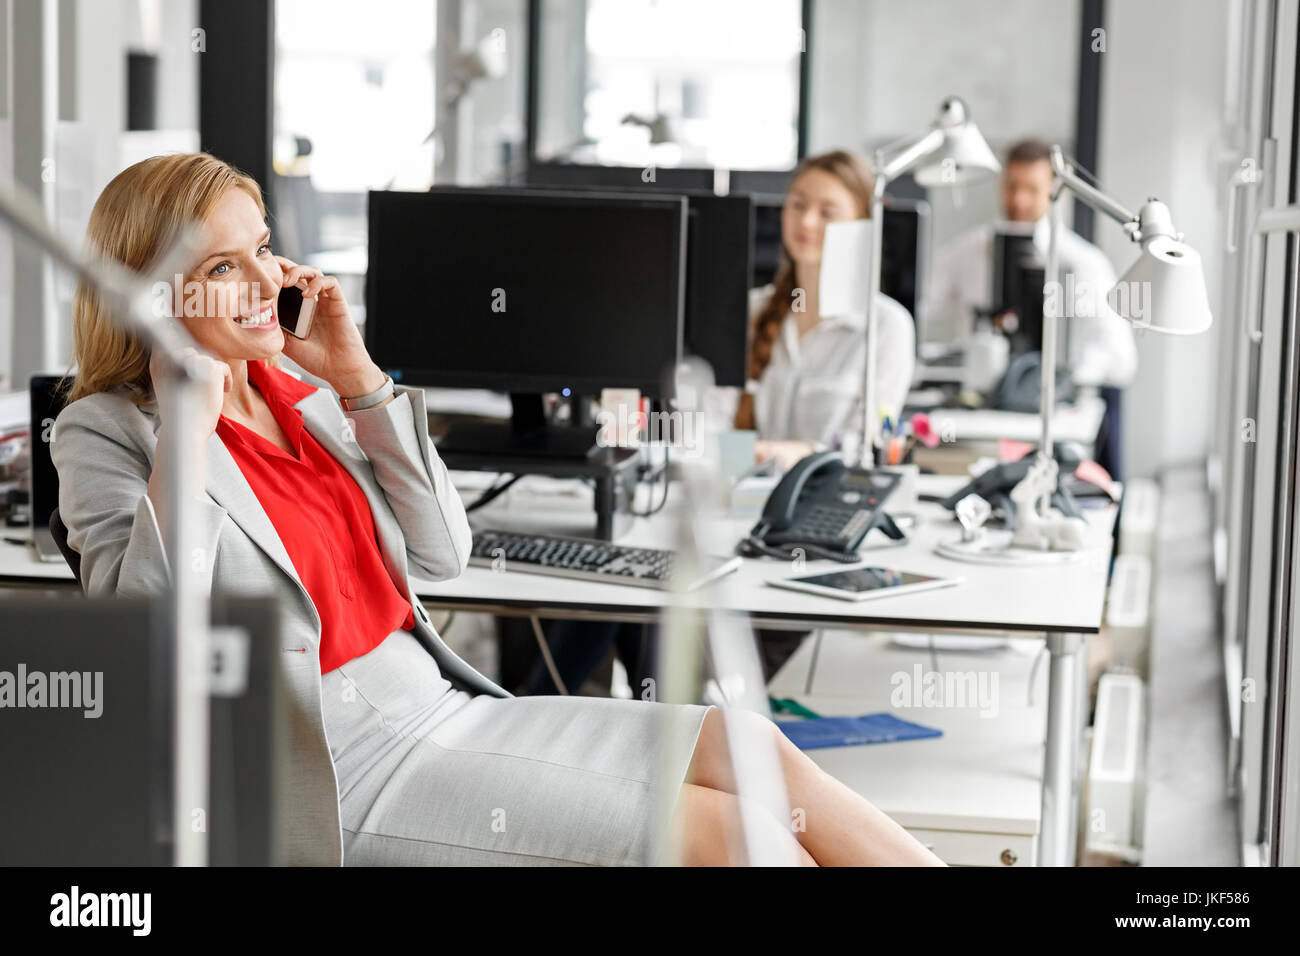 Businesswoman at desk in office on cell phone - Stock Image